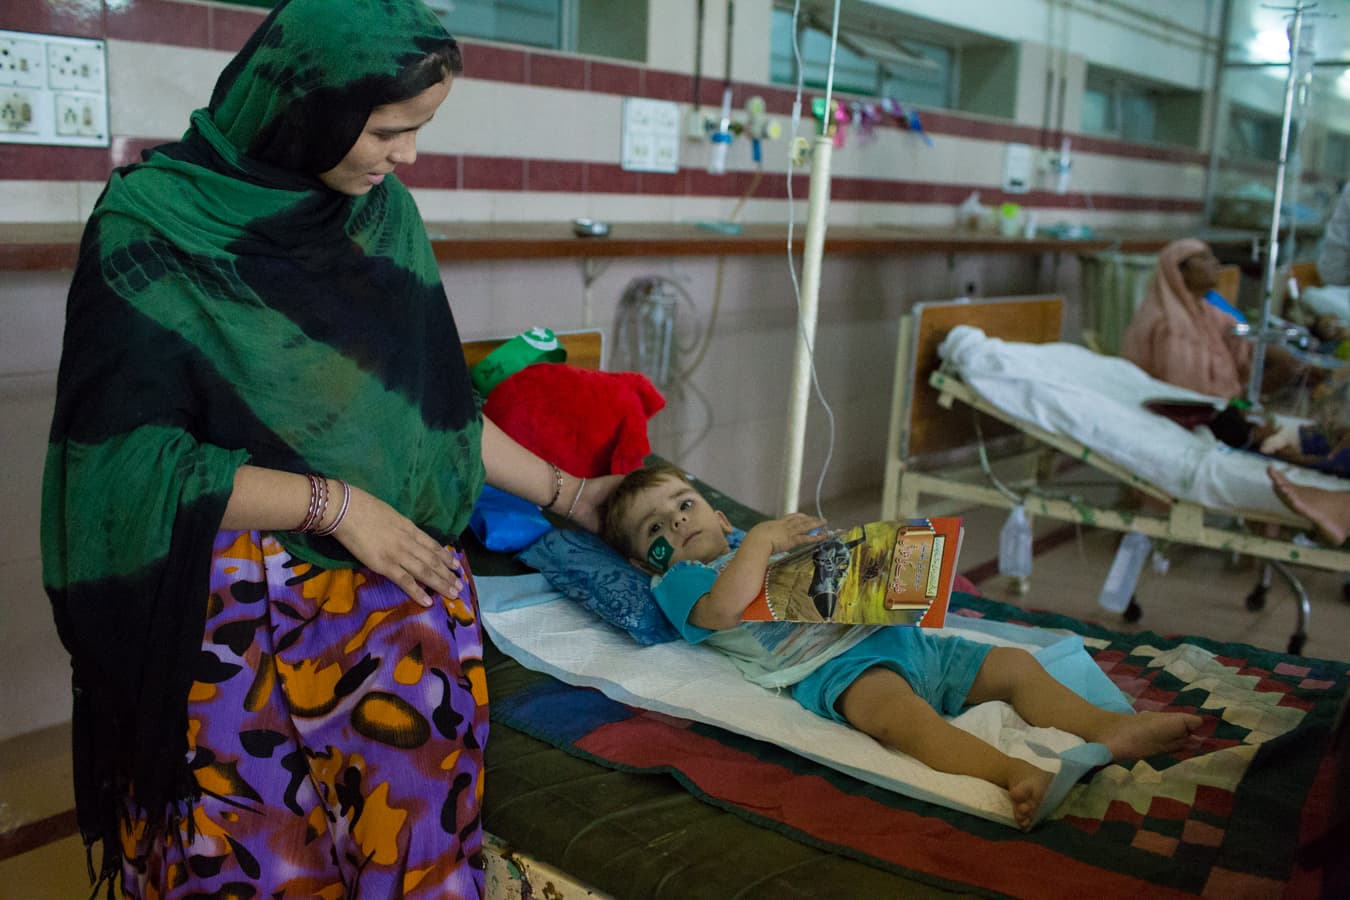 A mother tends to her son who is suffering from Gastroenteritis.